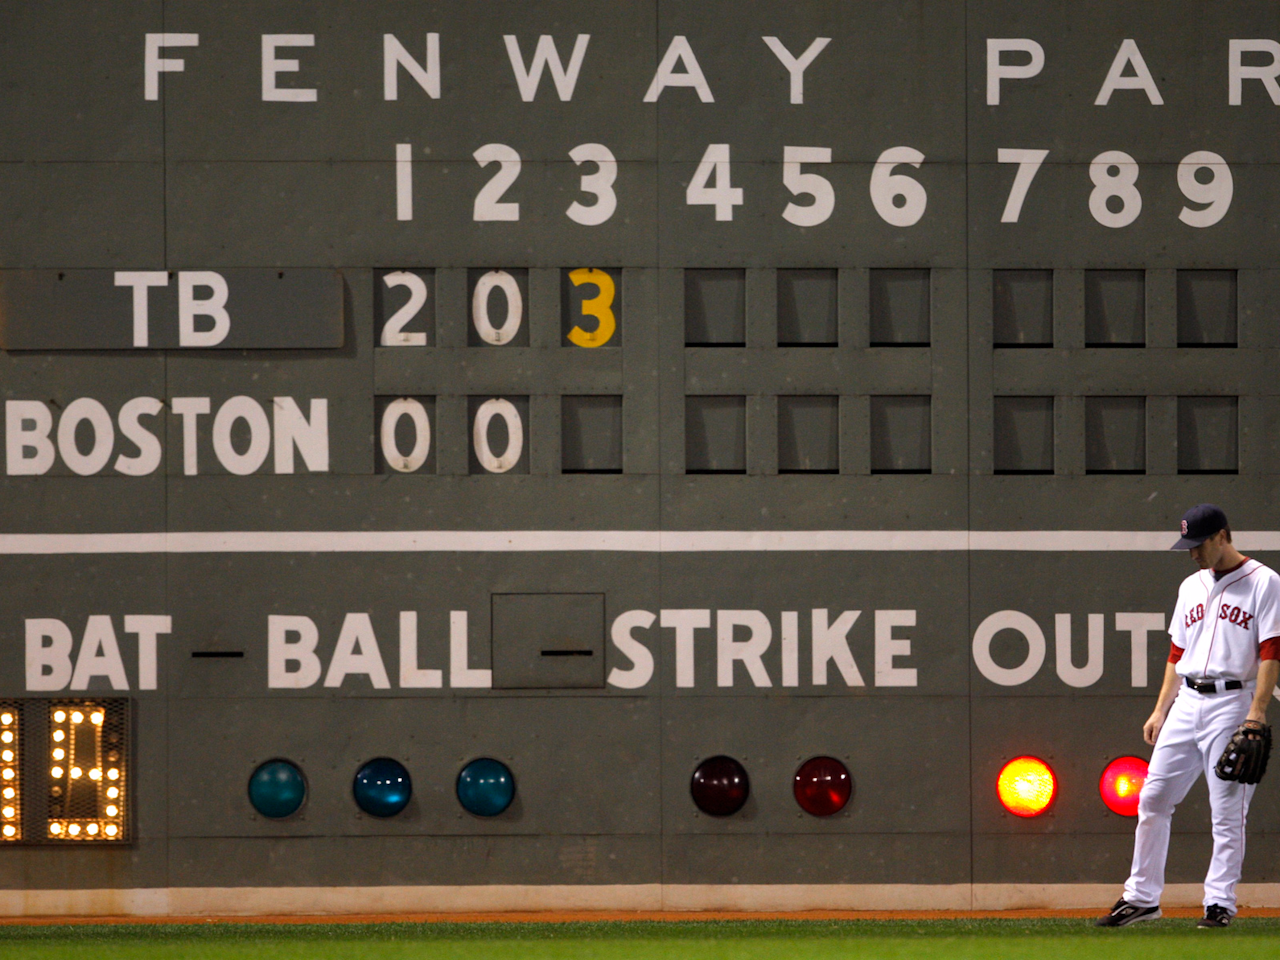 Boston Red Sox left fielder Jason Bay stands in front of the scoreboard in the third inning against the Tampa Bay Rays in Game 5 of Major League Baseball's ALCS playoff series in Boston.